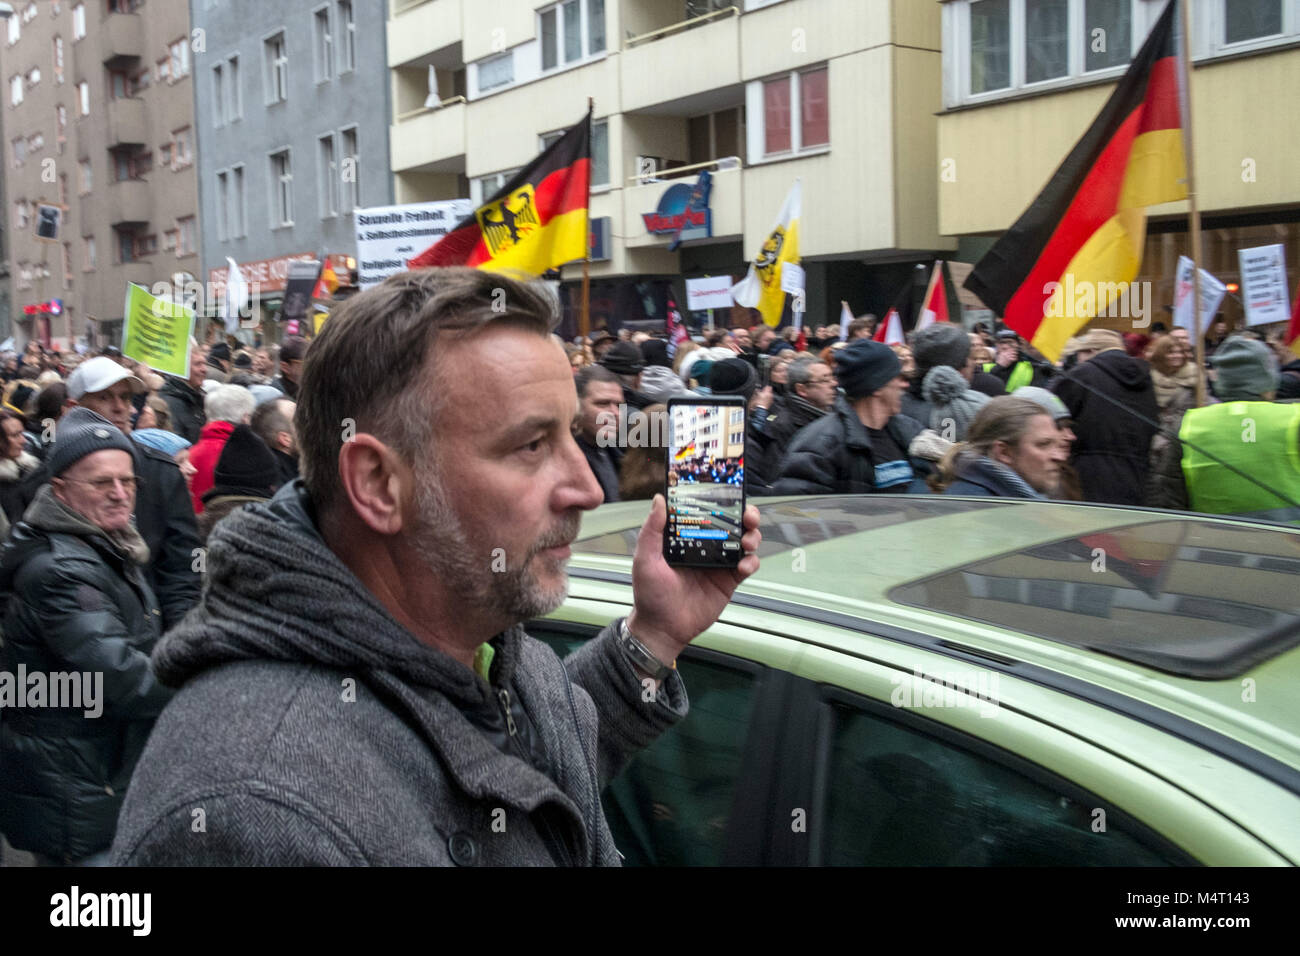 Berln, Germany. 17th Feb, 2018. Lutz Bachmann, founder of the anti-Islam movement 'Patriotische Europaeer gegen - Stock Image